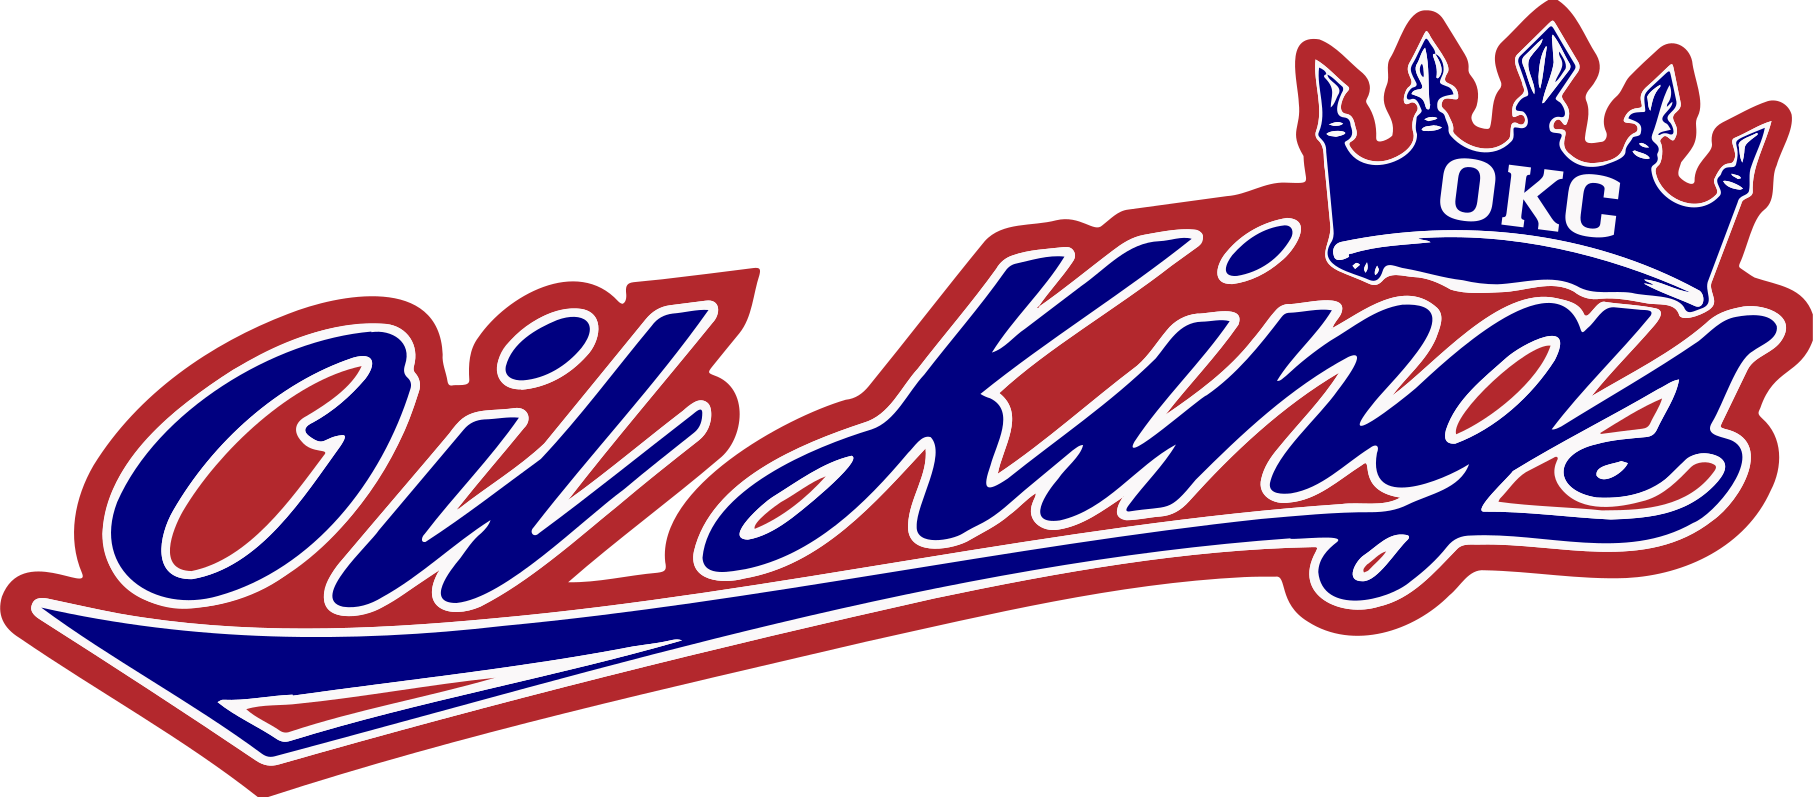 Okc oilkings blueonred